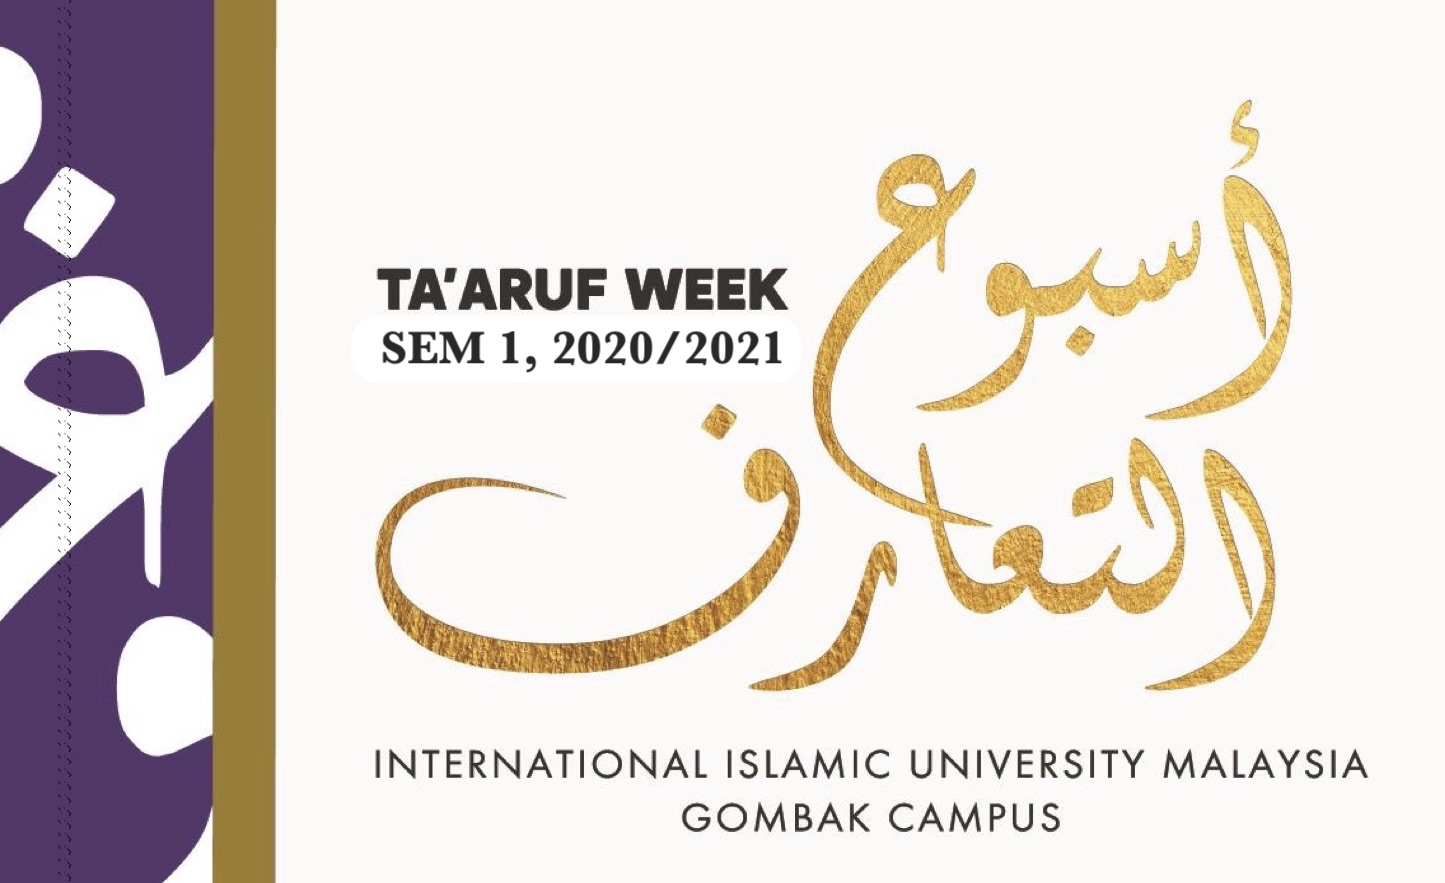 IIUM TAARUF PROGRAM 2020